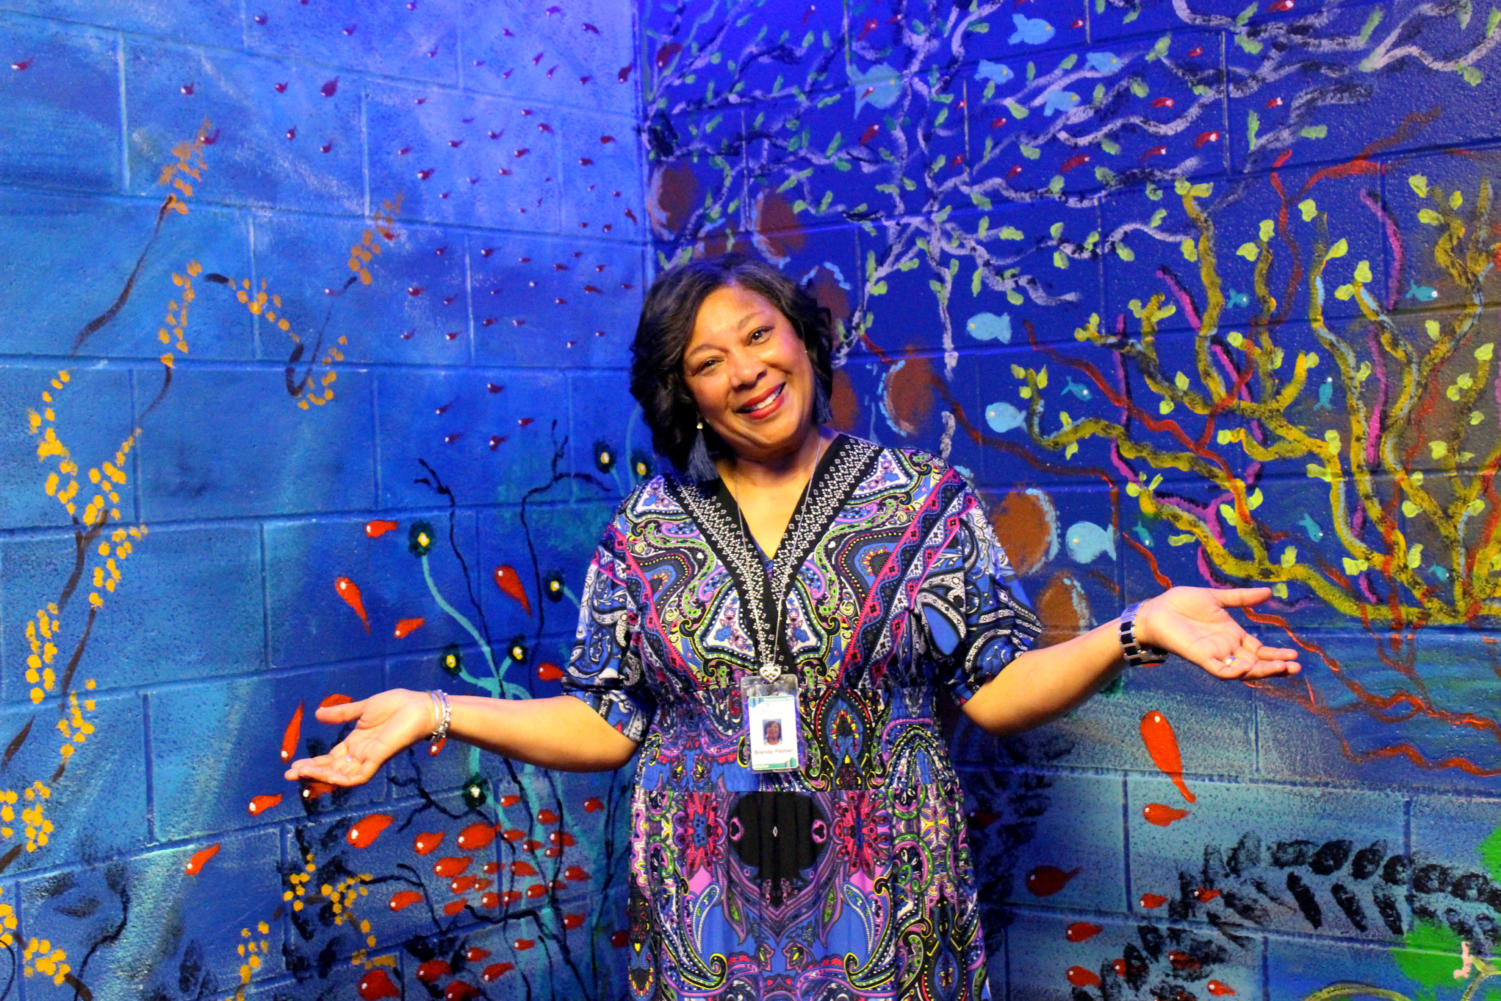 Mrs. Palmer smiles happily in front of the vividly painted walls of the Blue Room.